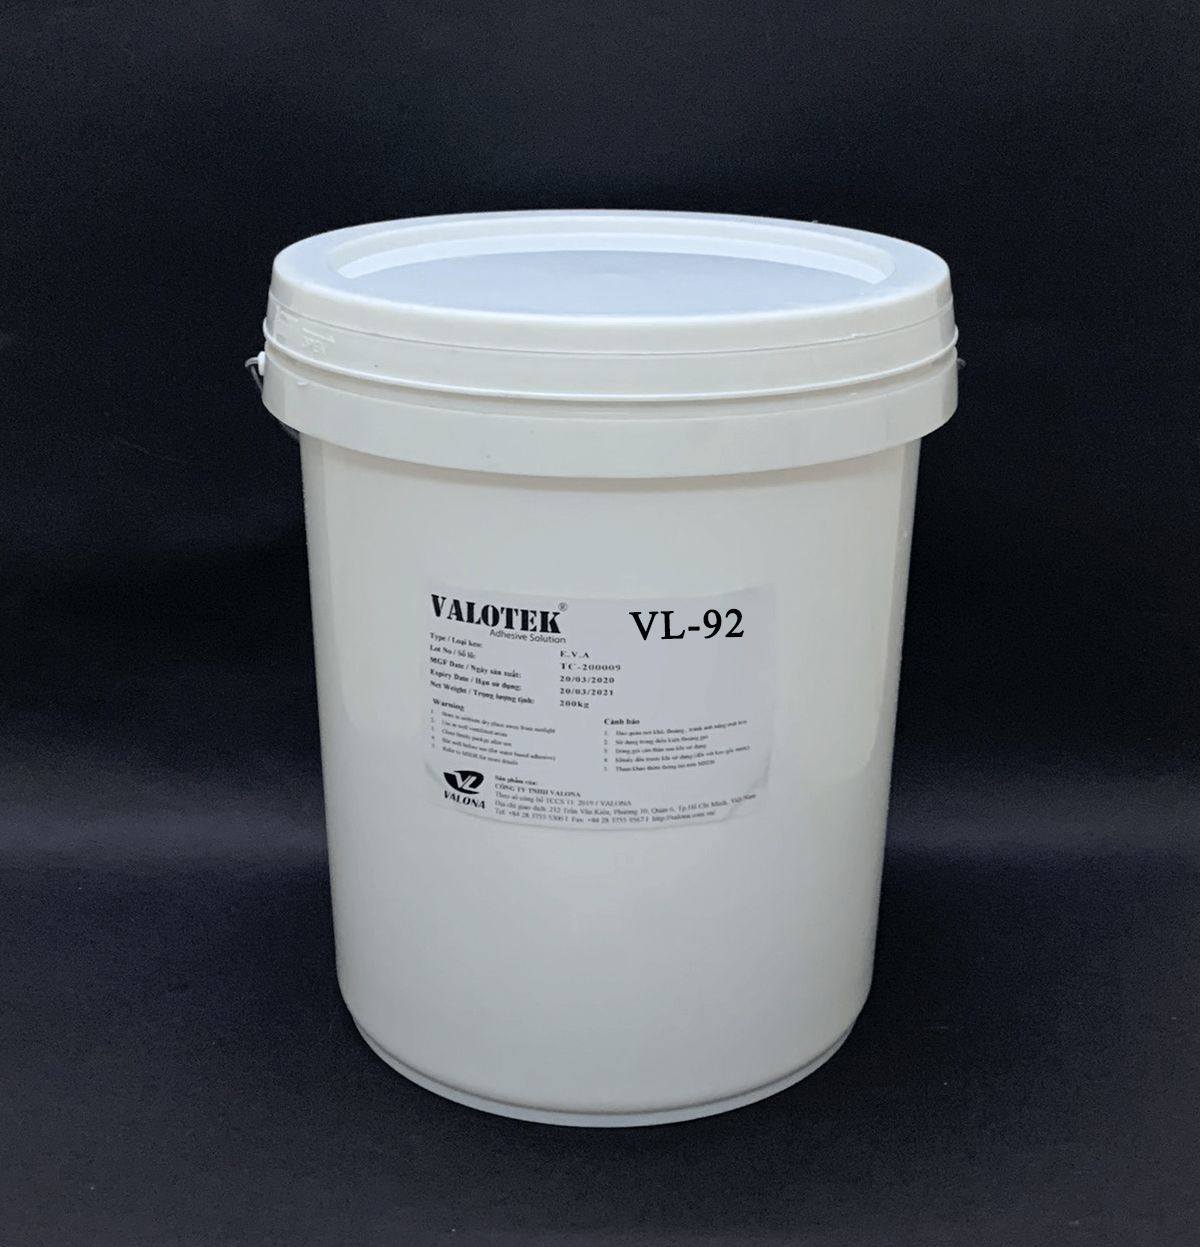 WATER-BASED GLUE FOR LAMINATING OPP ON PAPER VALOTEK VL-92